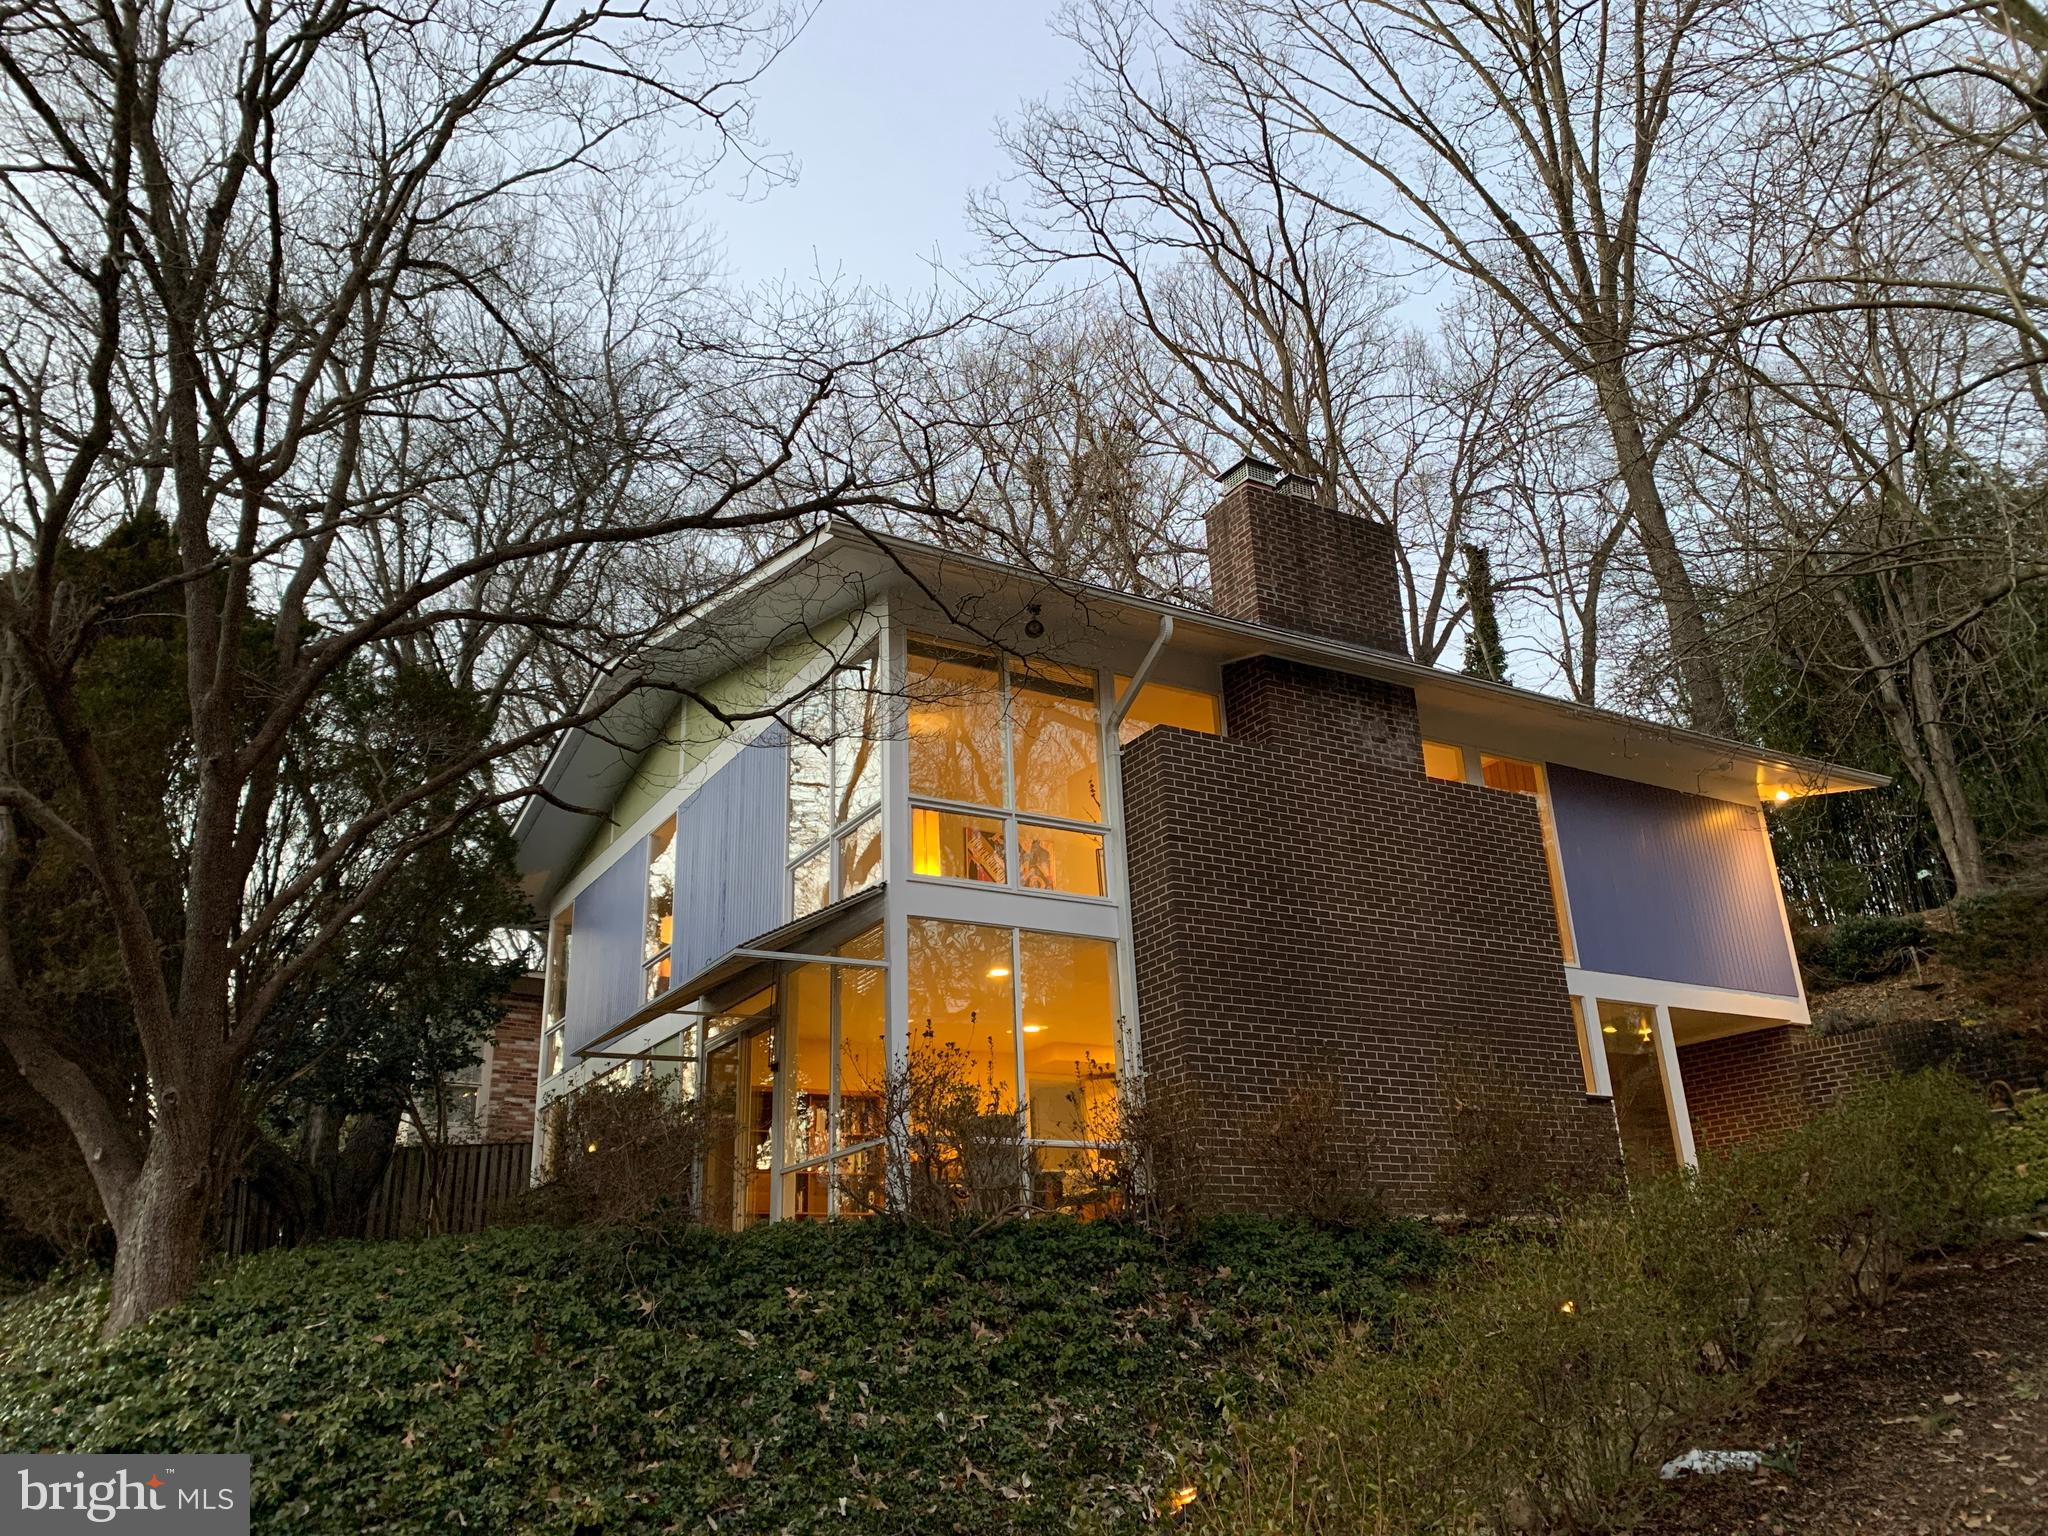 Acclaimed midcentury modern architect Charles Goodman designed this house, built in 1960, with his s